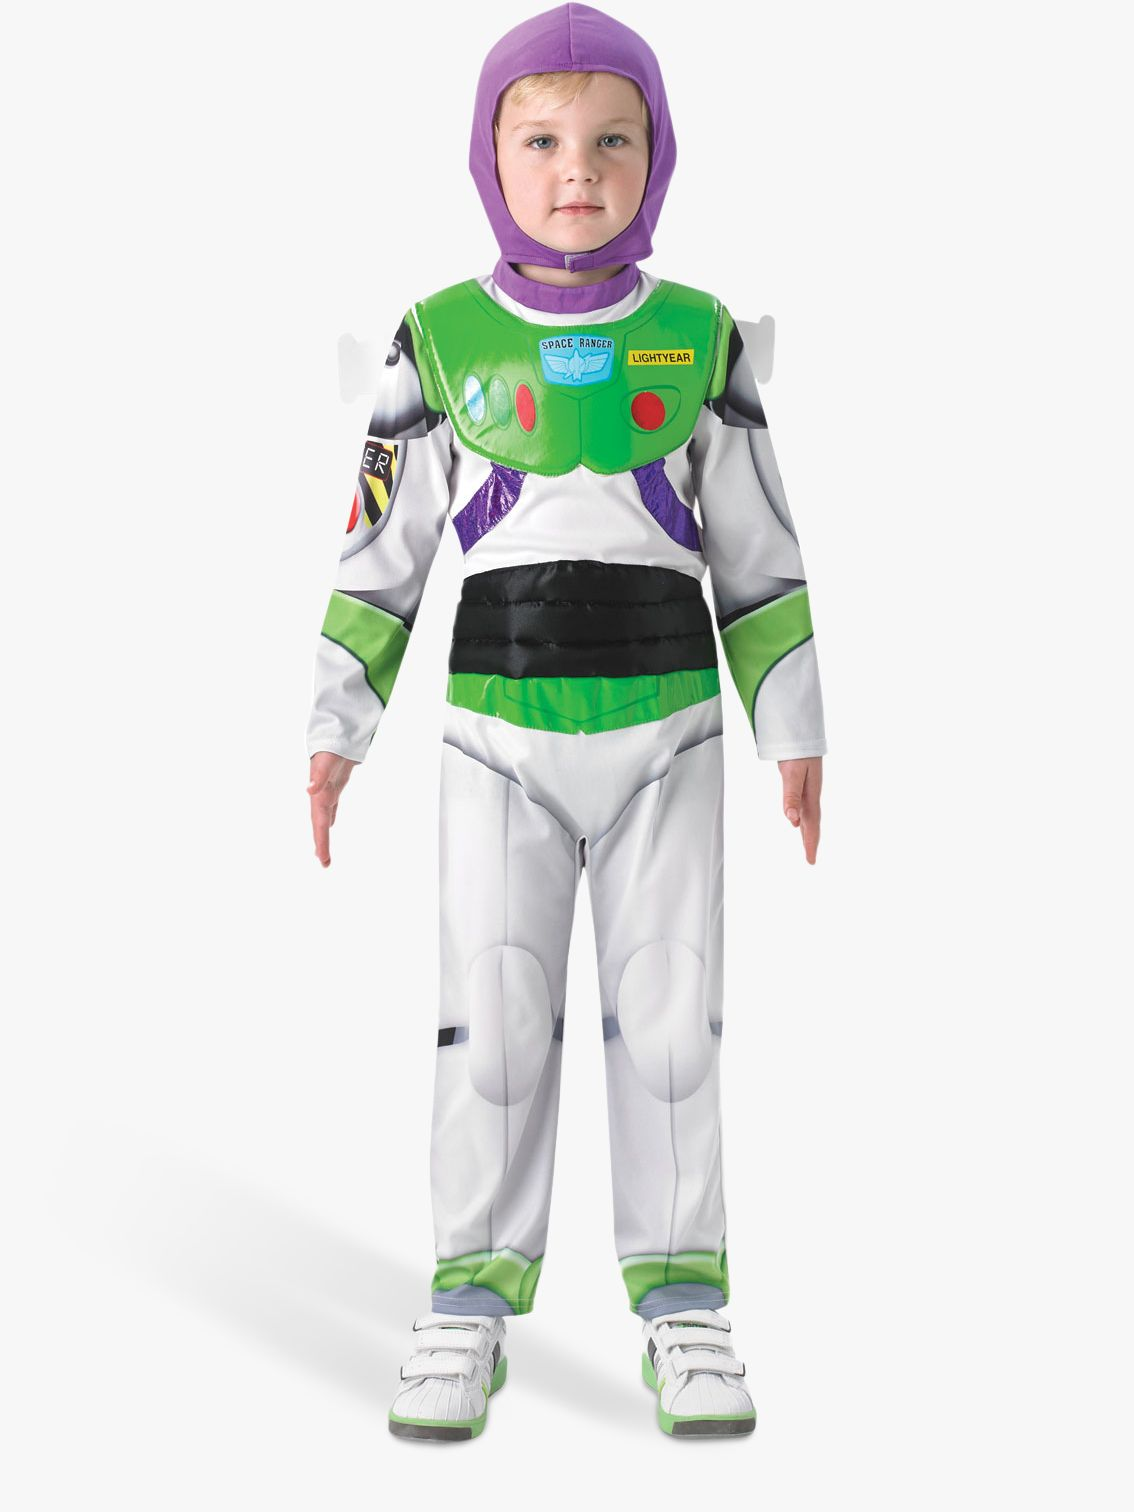 Rubies Toy Story Buzz Lightyear Deluxe Children's Costume, 5-6 years